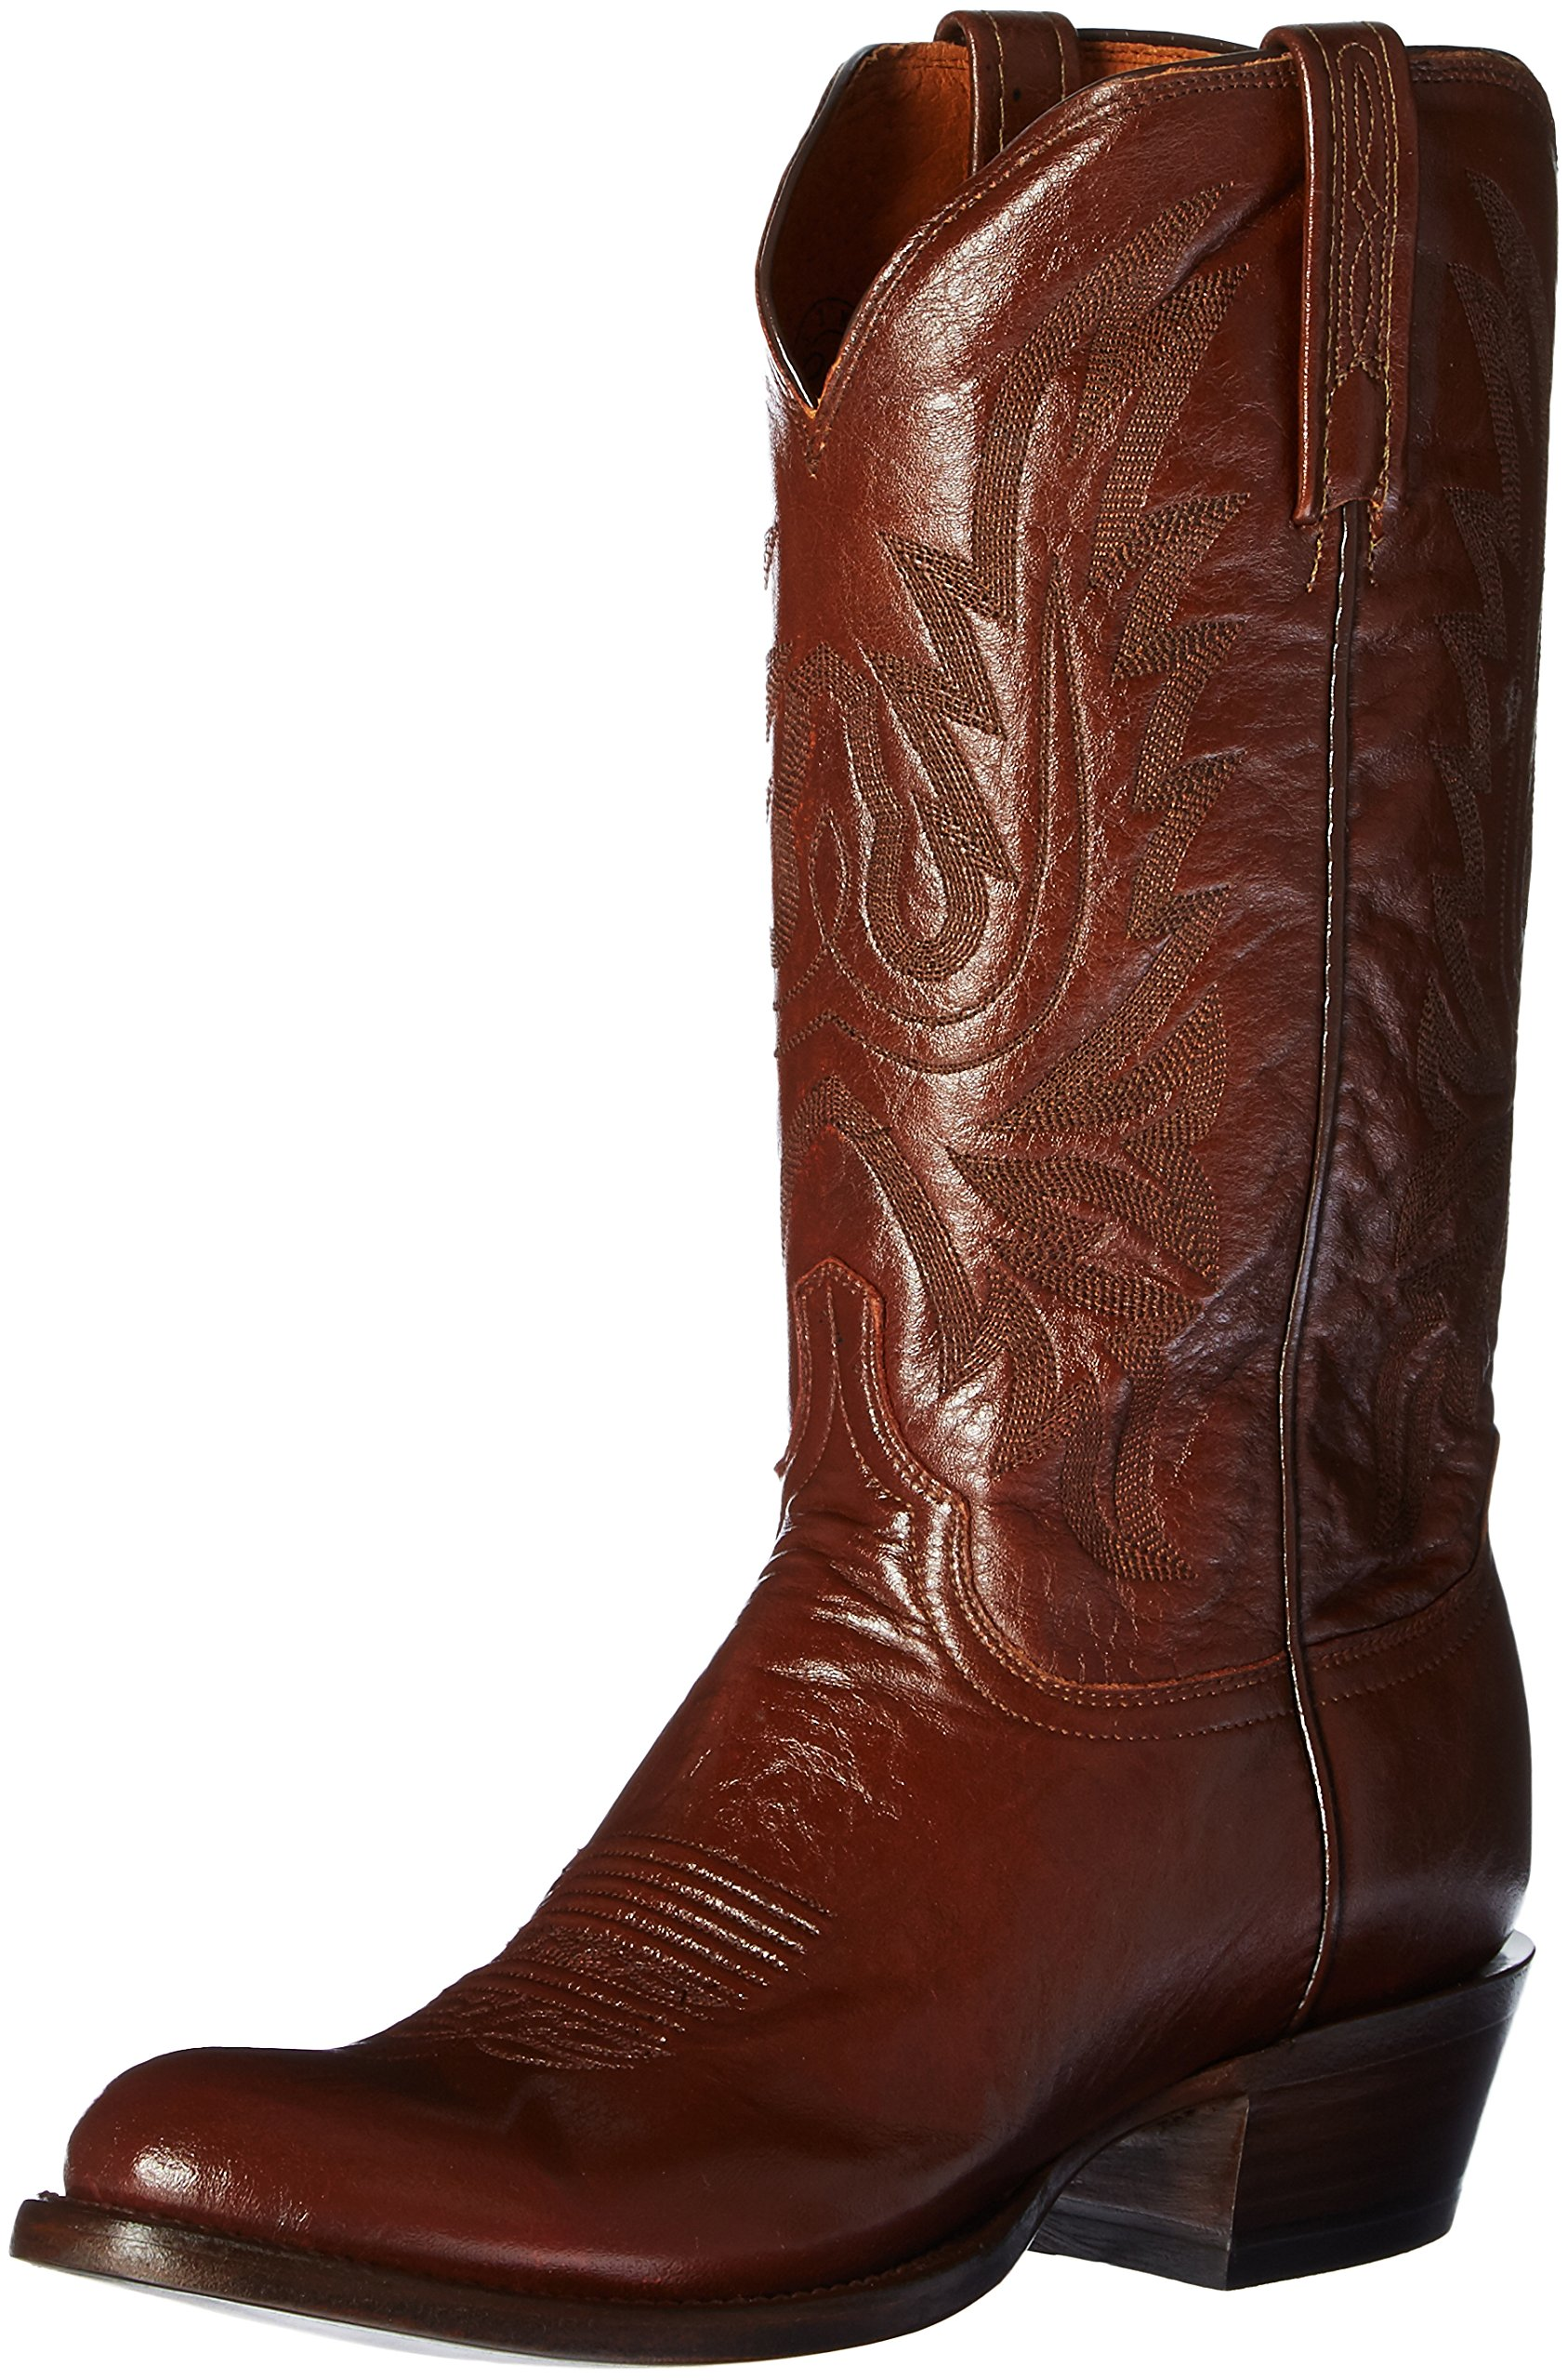 Lucchese Bootmaker Men's Carson-Ant Bn Lonestar Calf Cowboy Riding Boot, Antique Brown, 10 D US